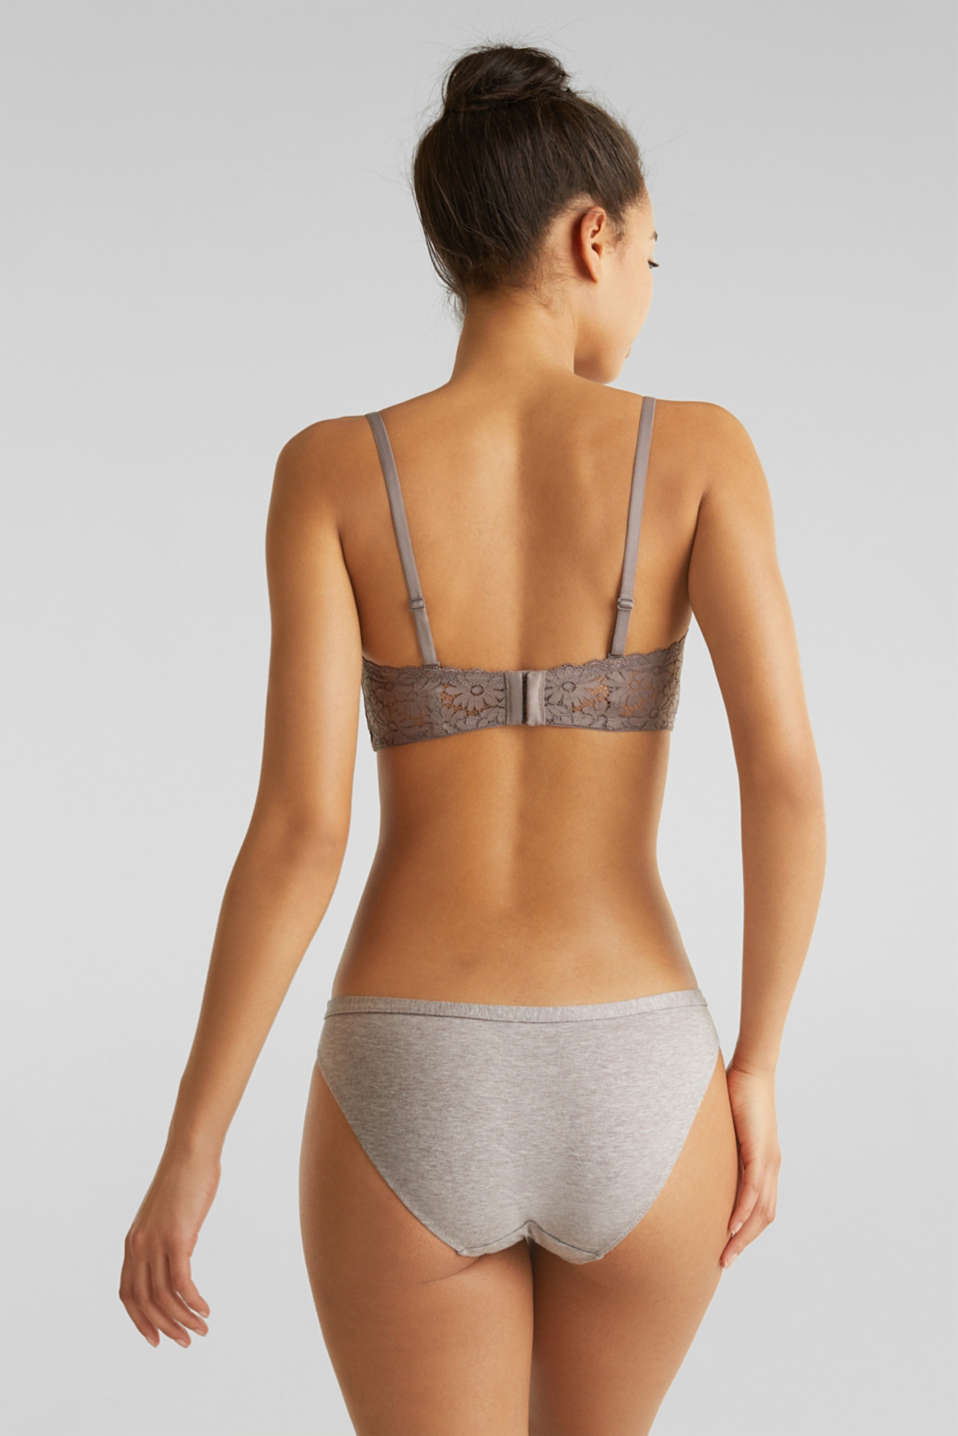 Padded bikini top with detachable straps, LIGHT TAUPE, detail image number 1